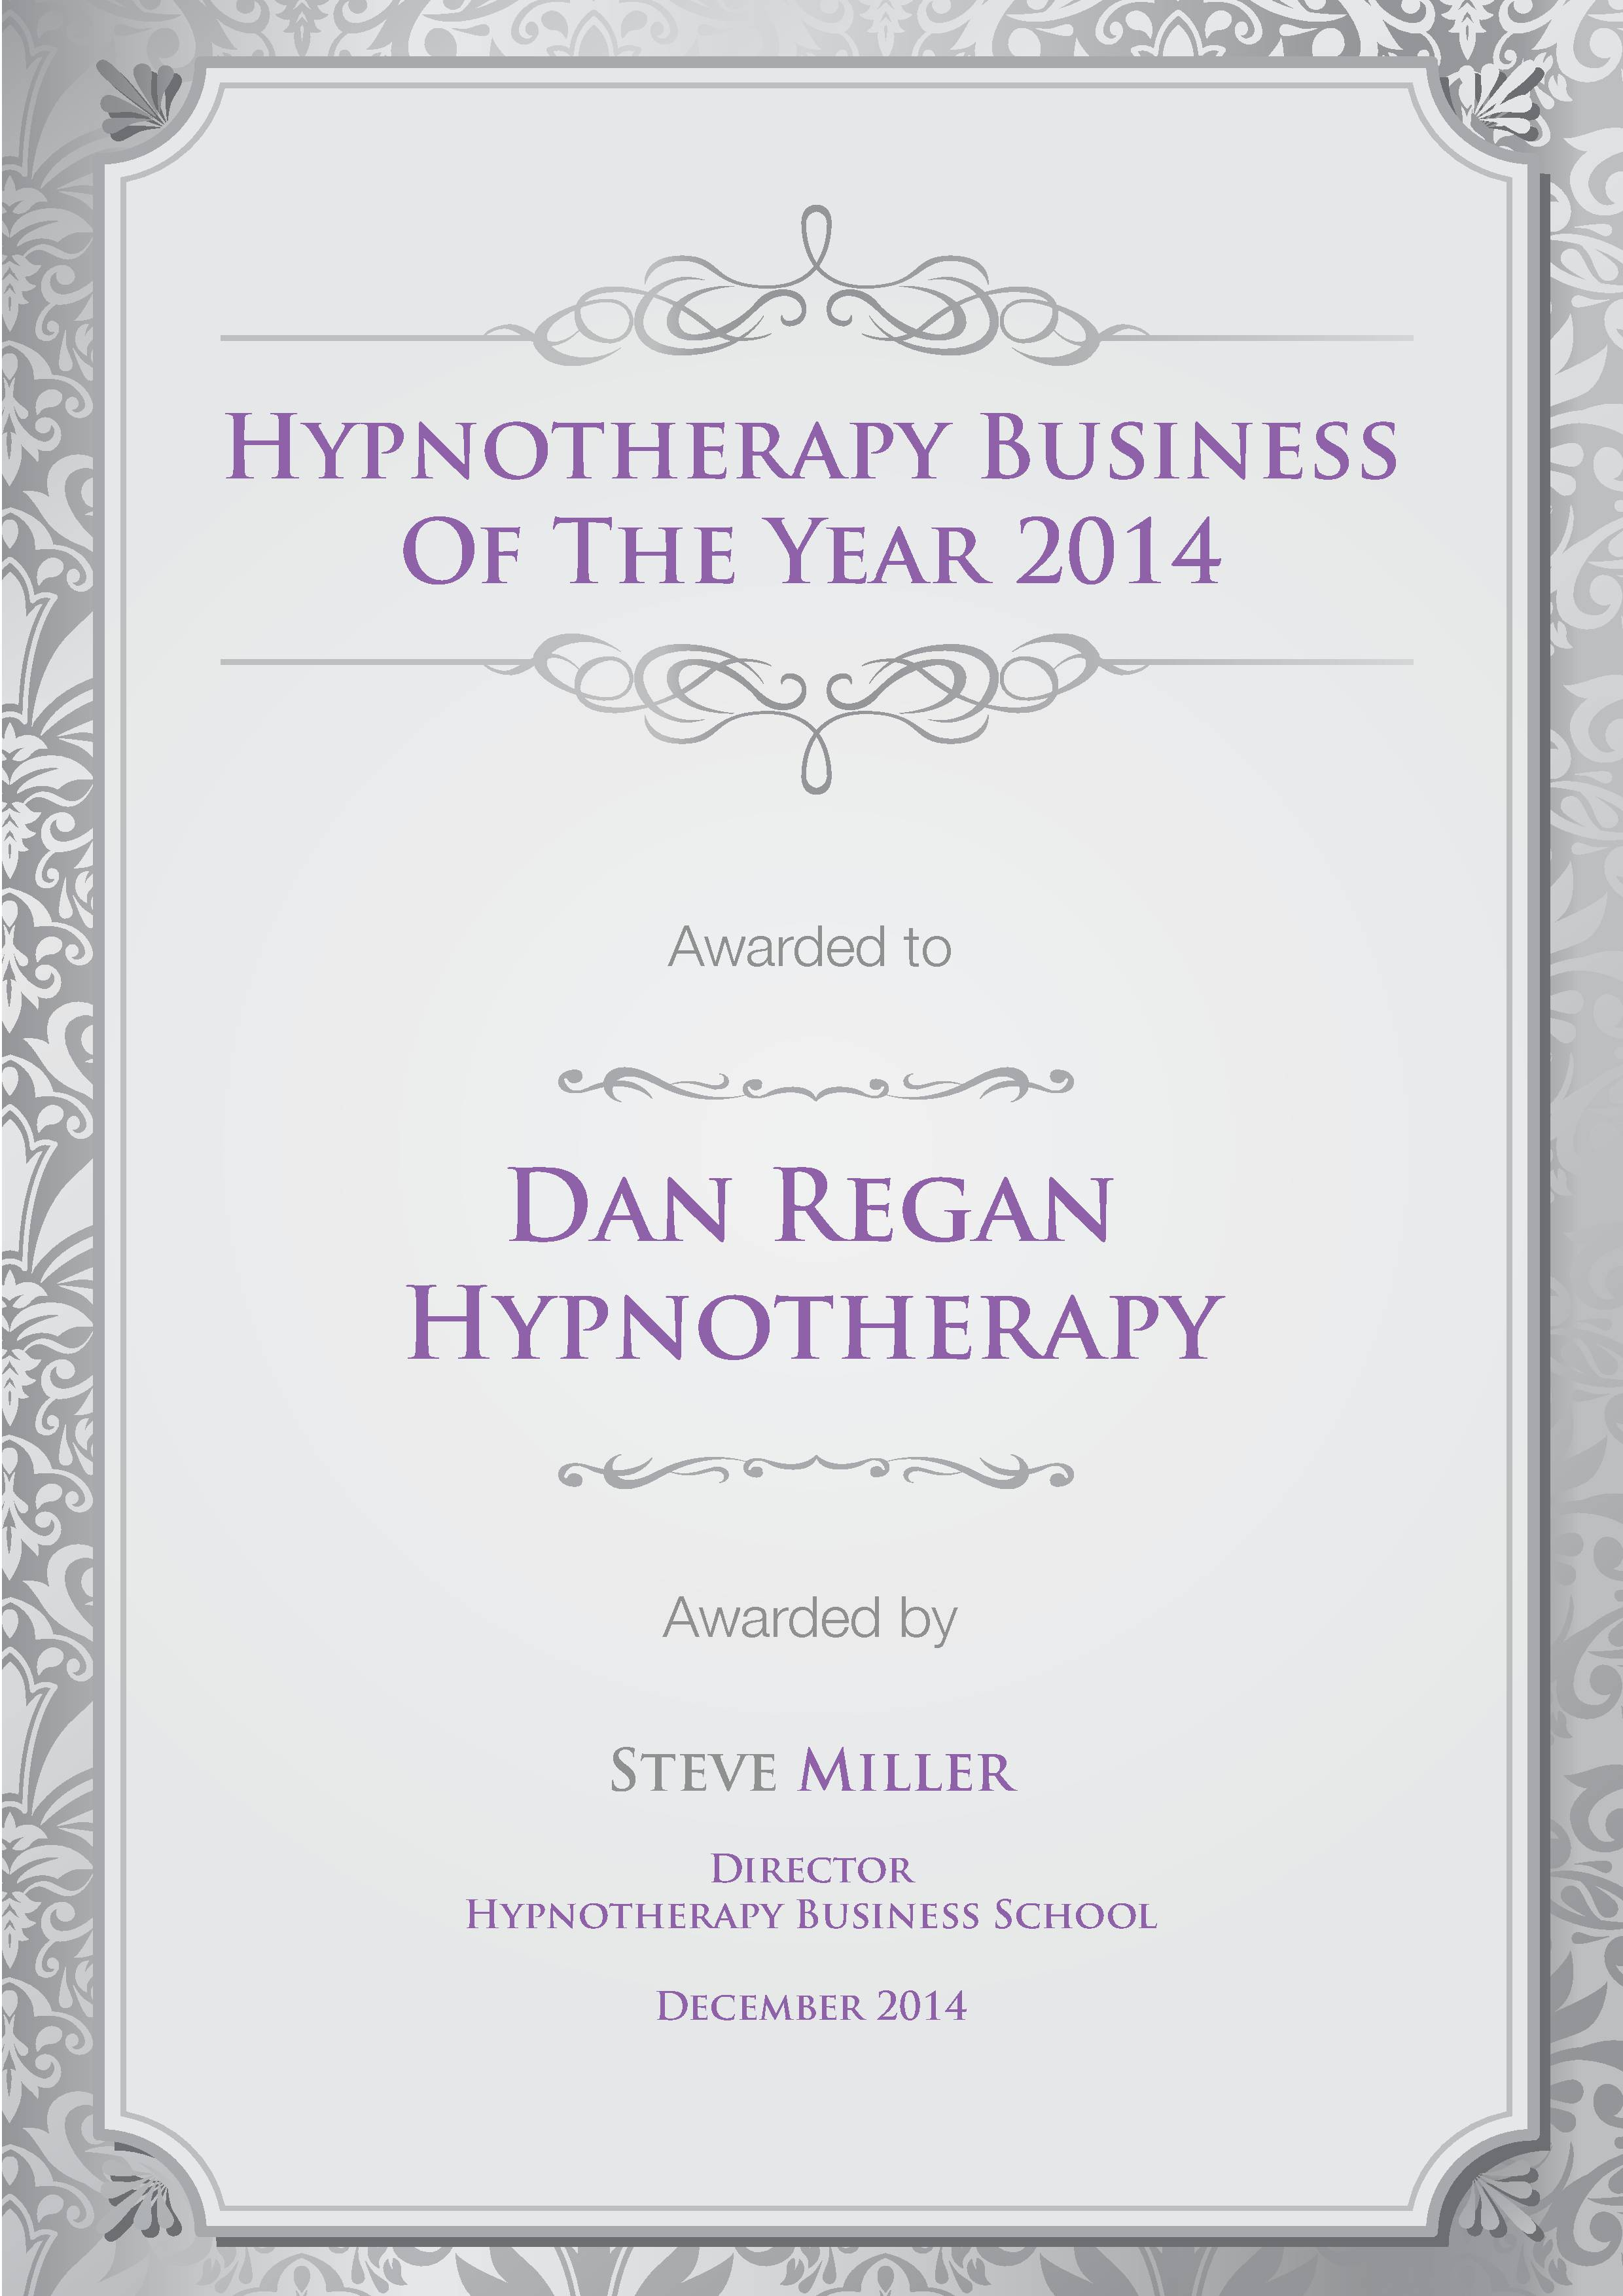 Dan Regan Hypnotherapy Business of the Year